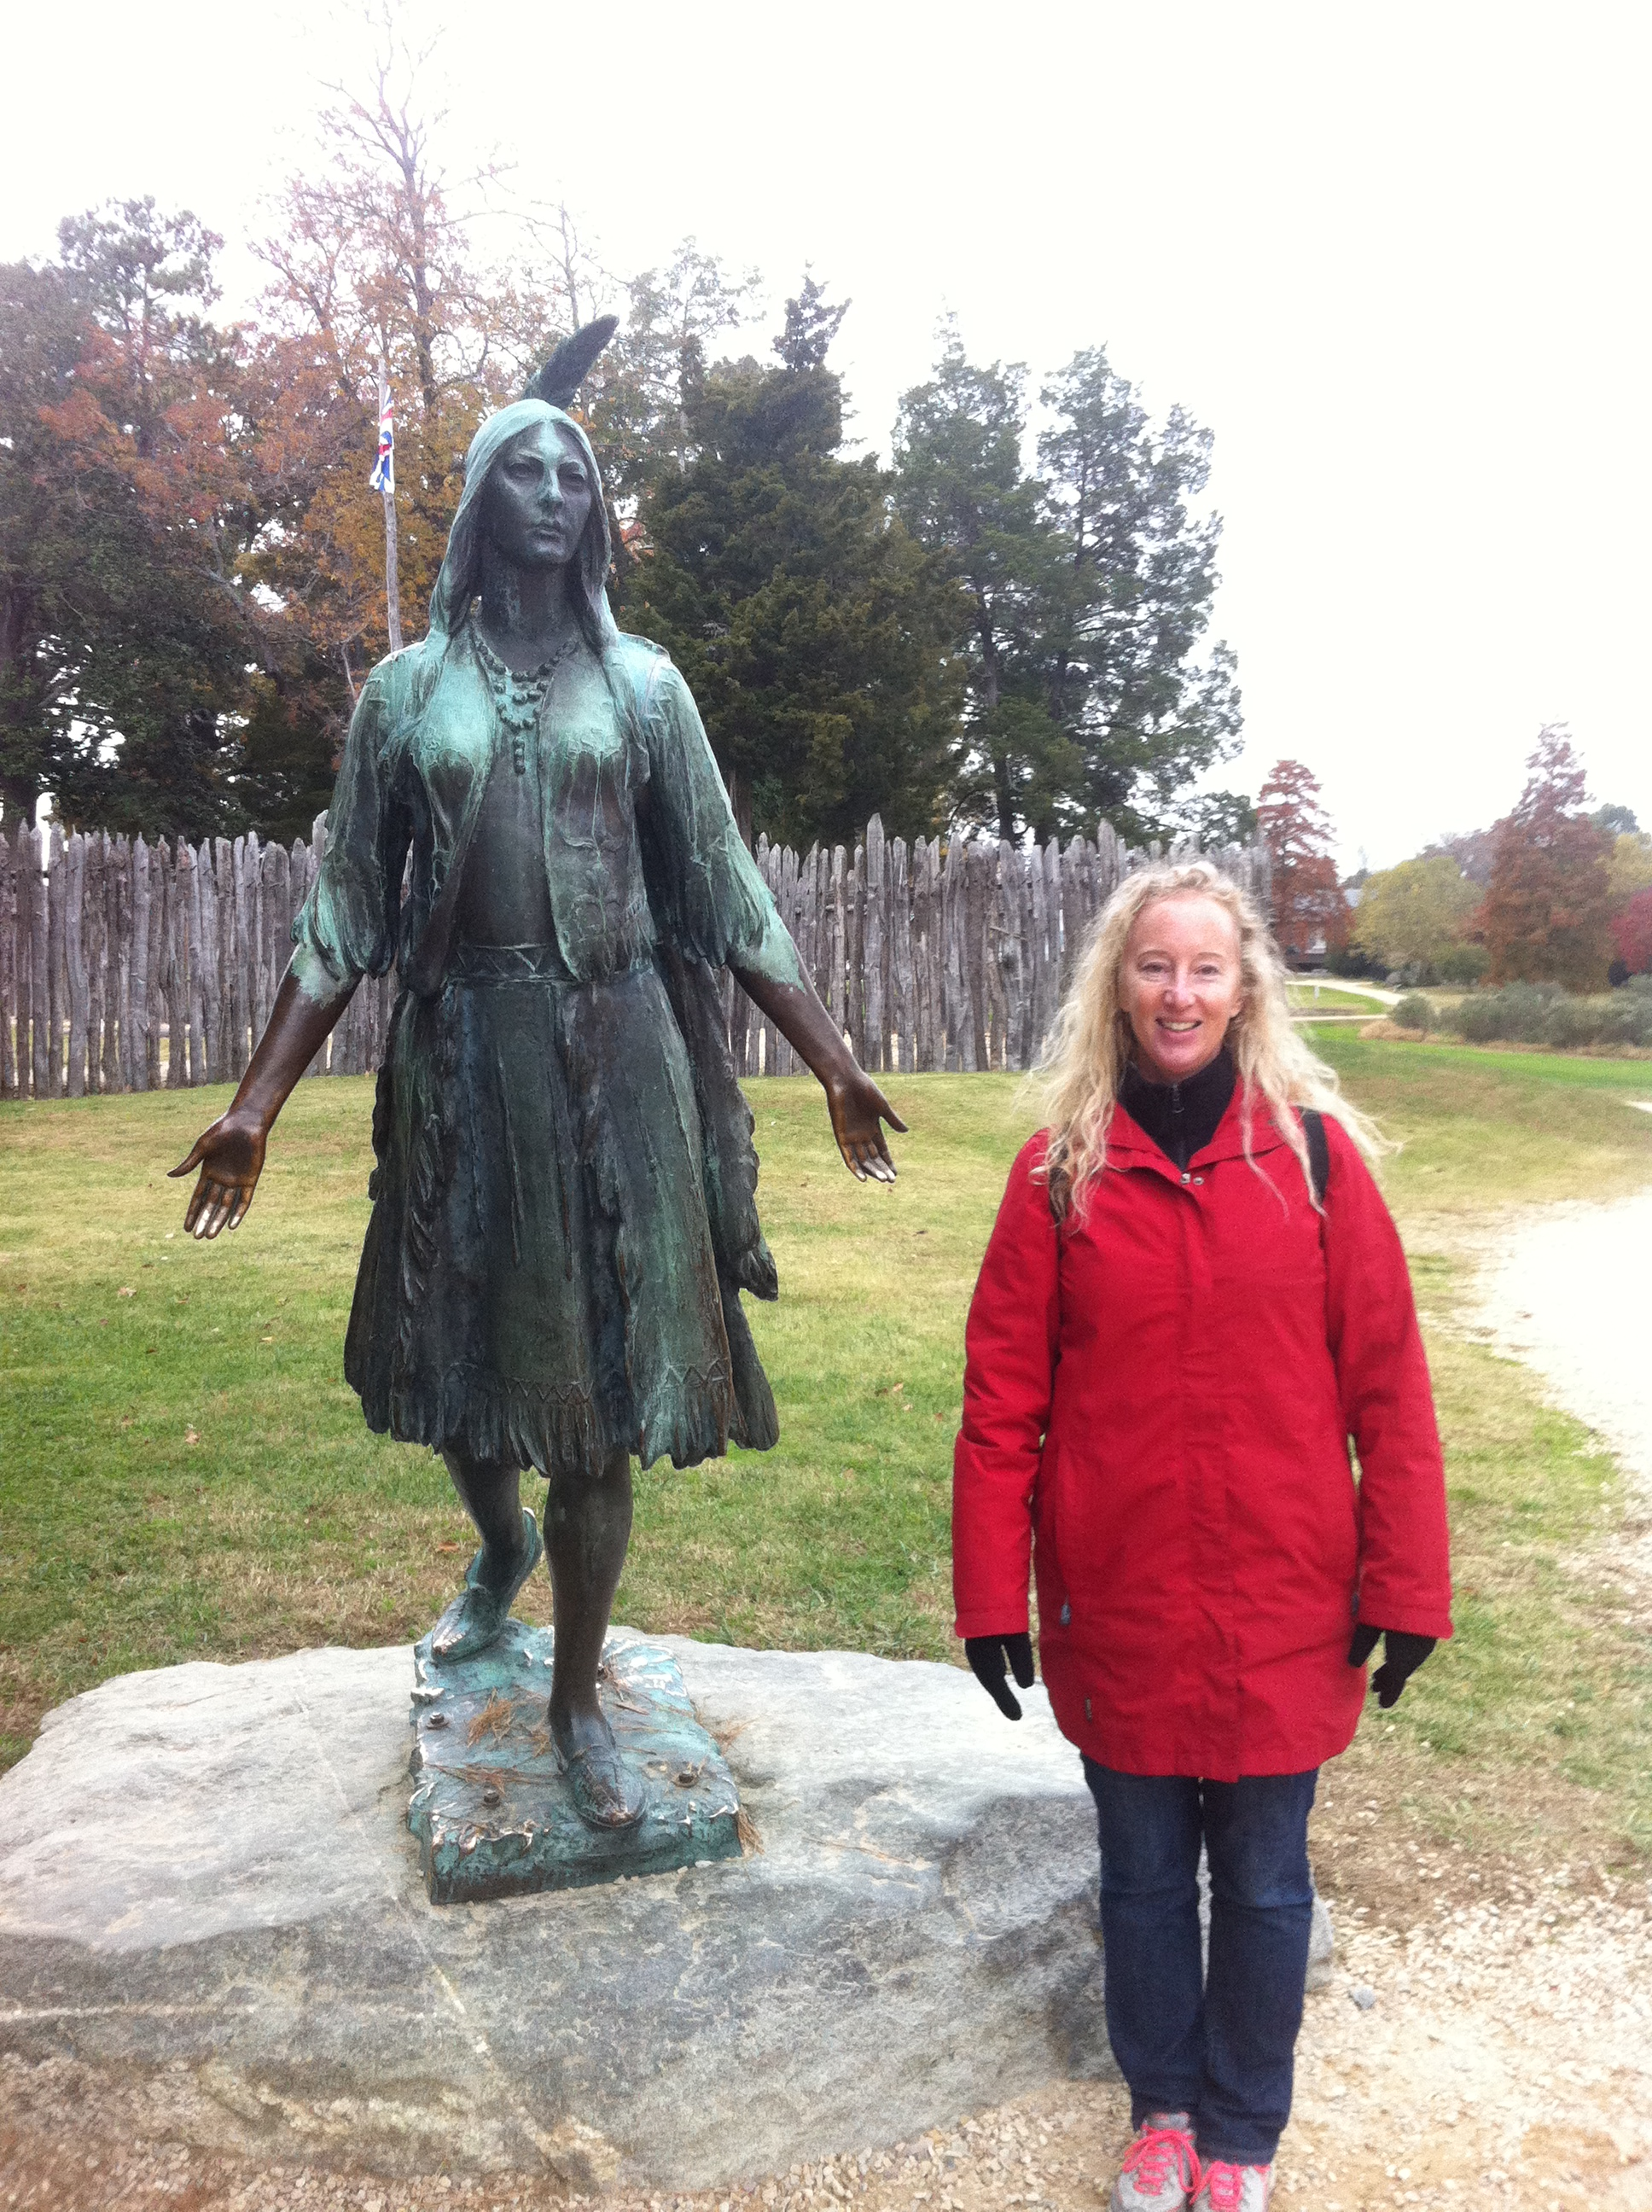 A visit to Jamestown in Virginia (Nederlands Vertaling)